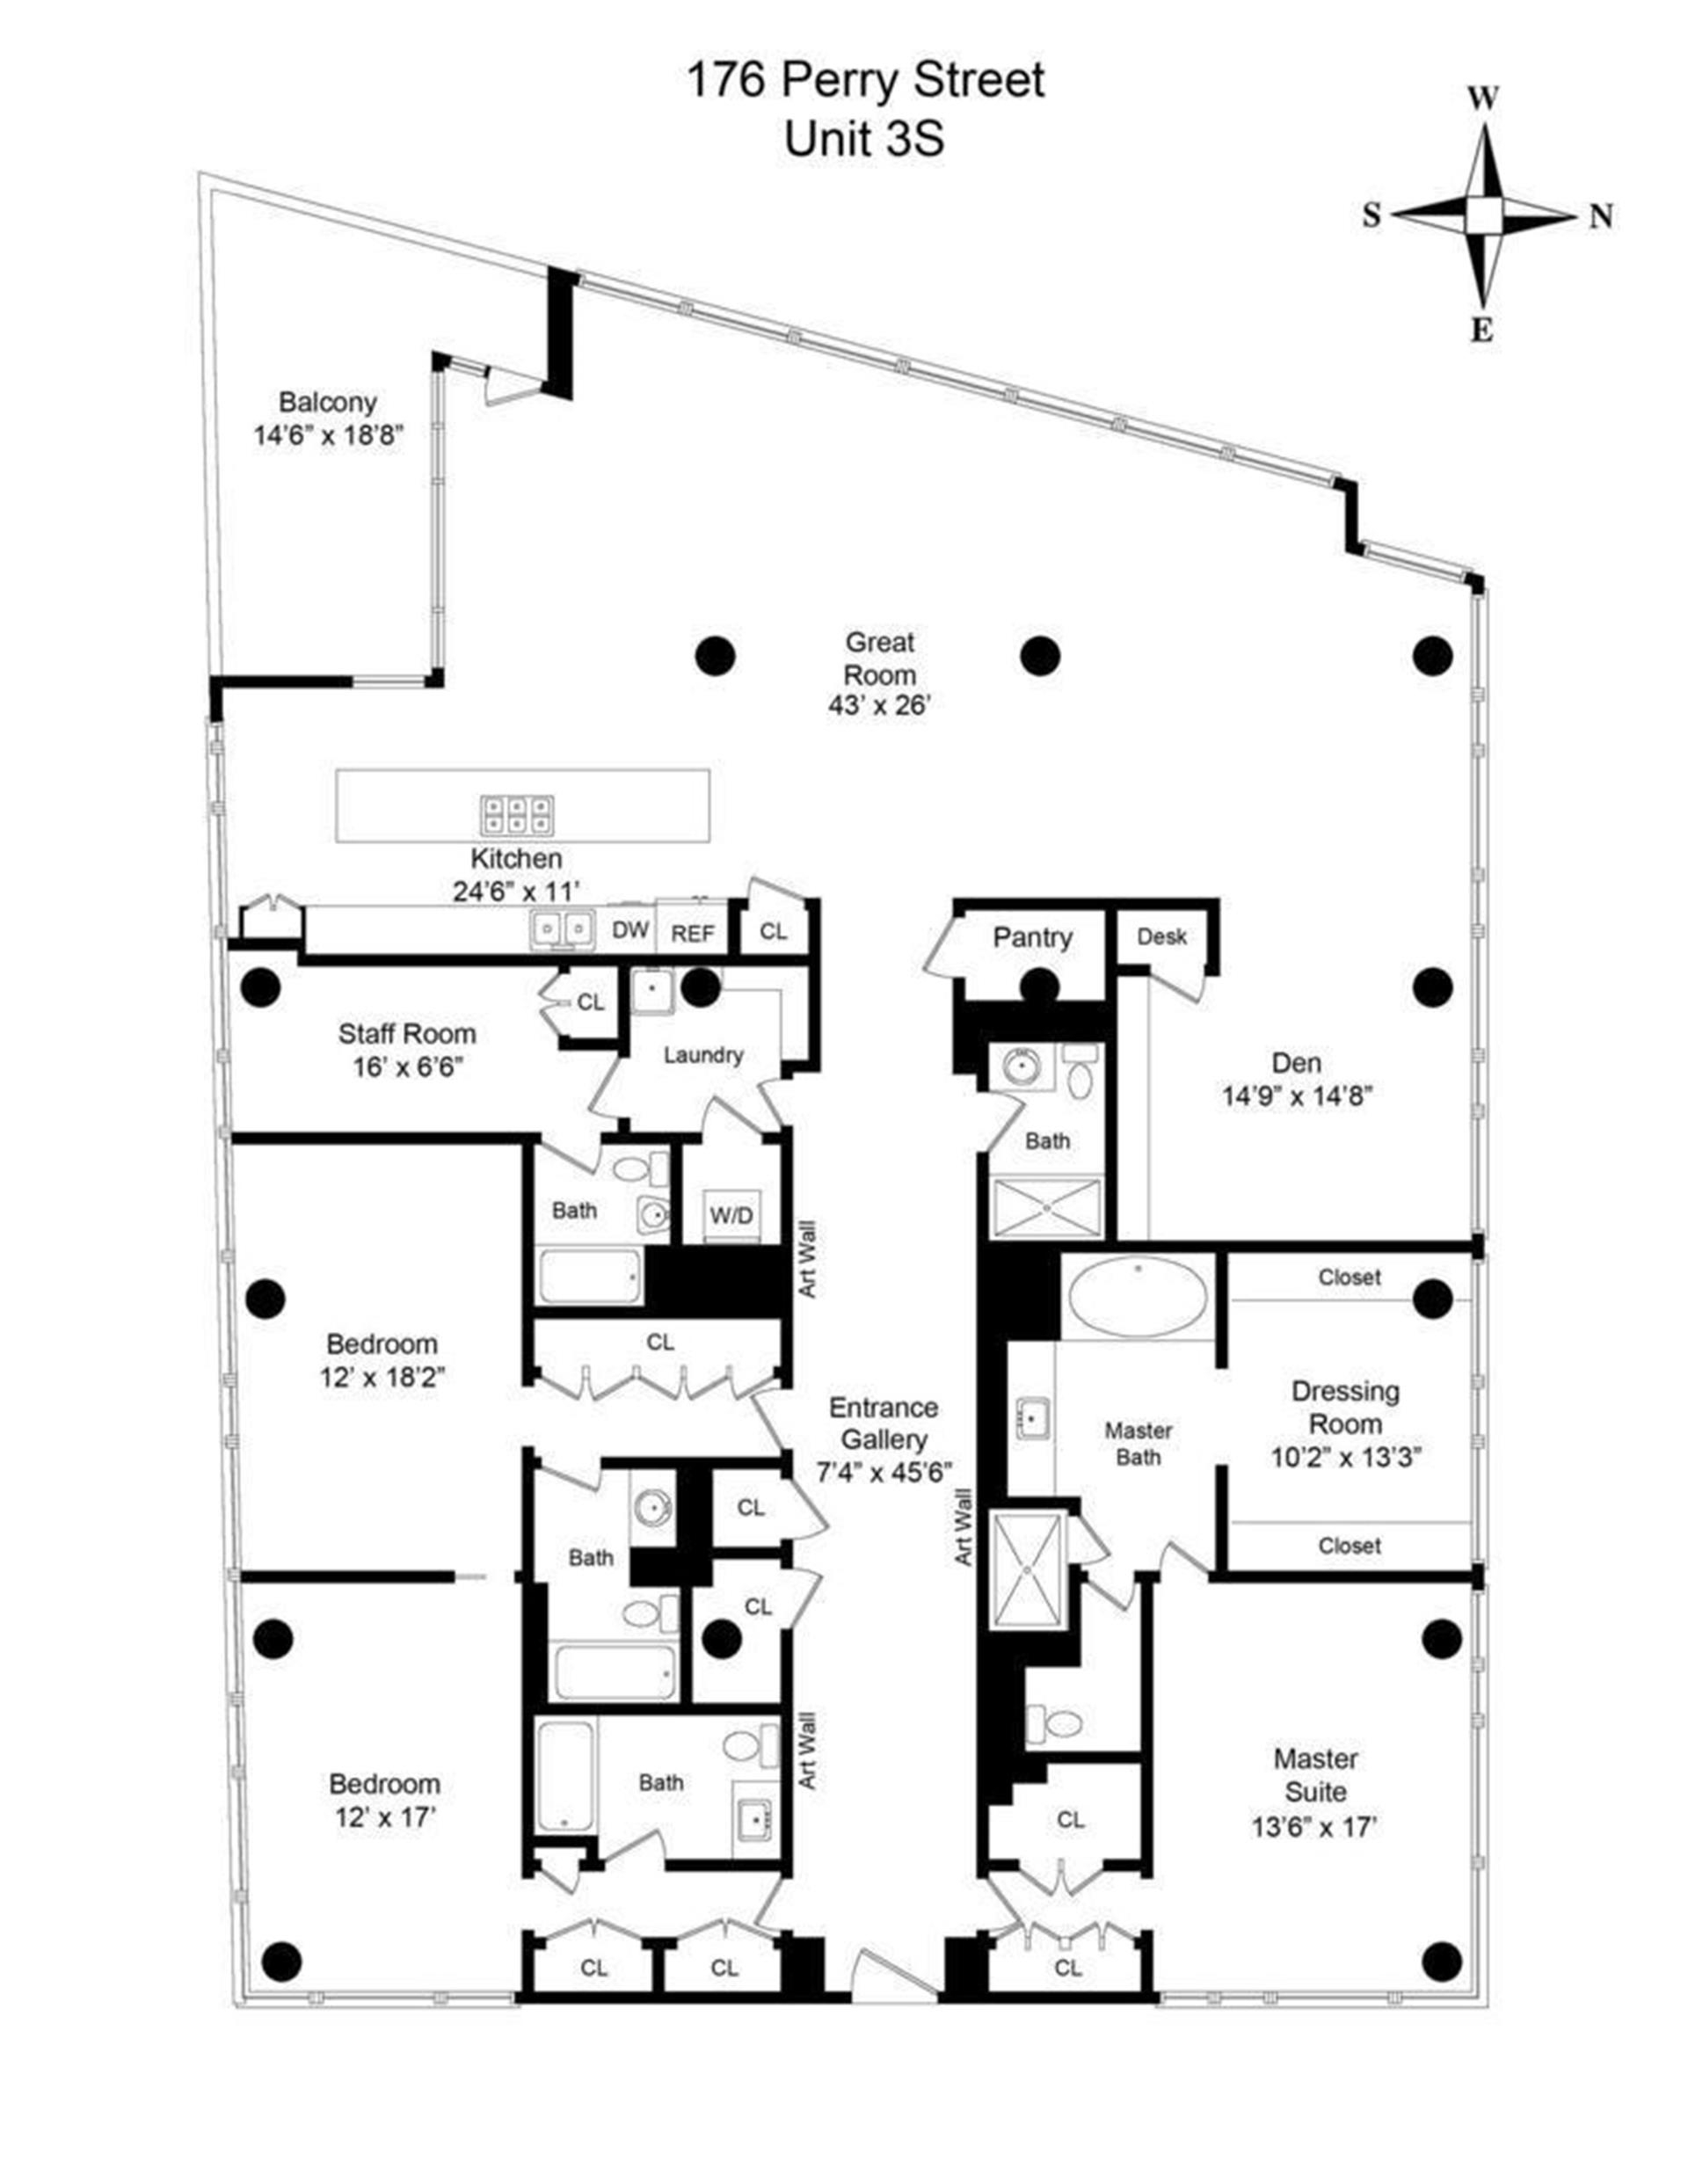 Floor plan of 176 Perry St, 3S - West Village - Meatpacking District, New York